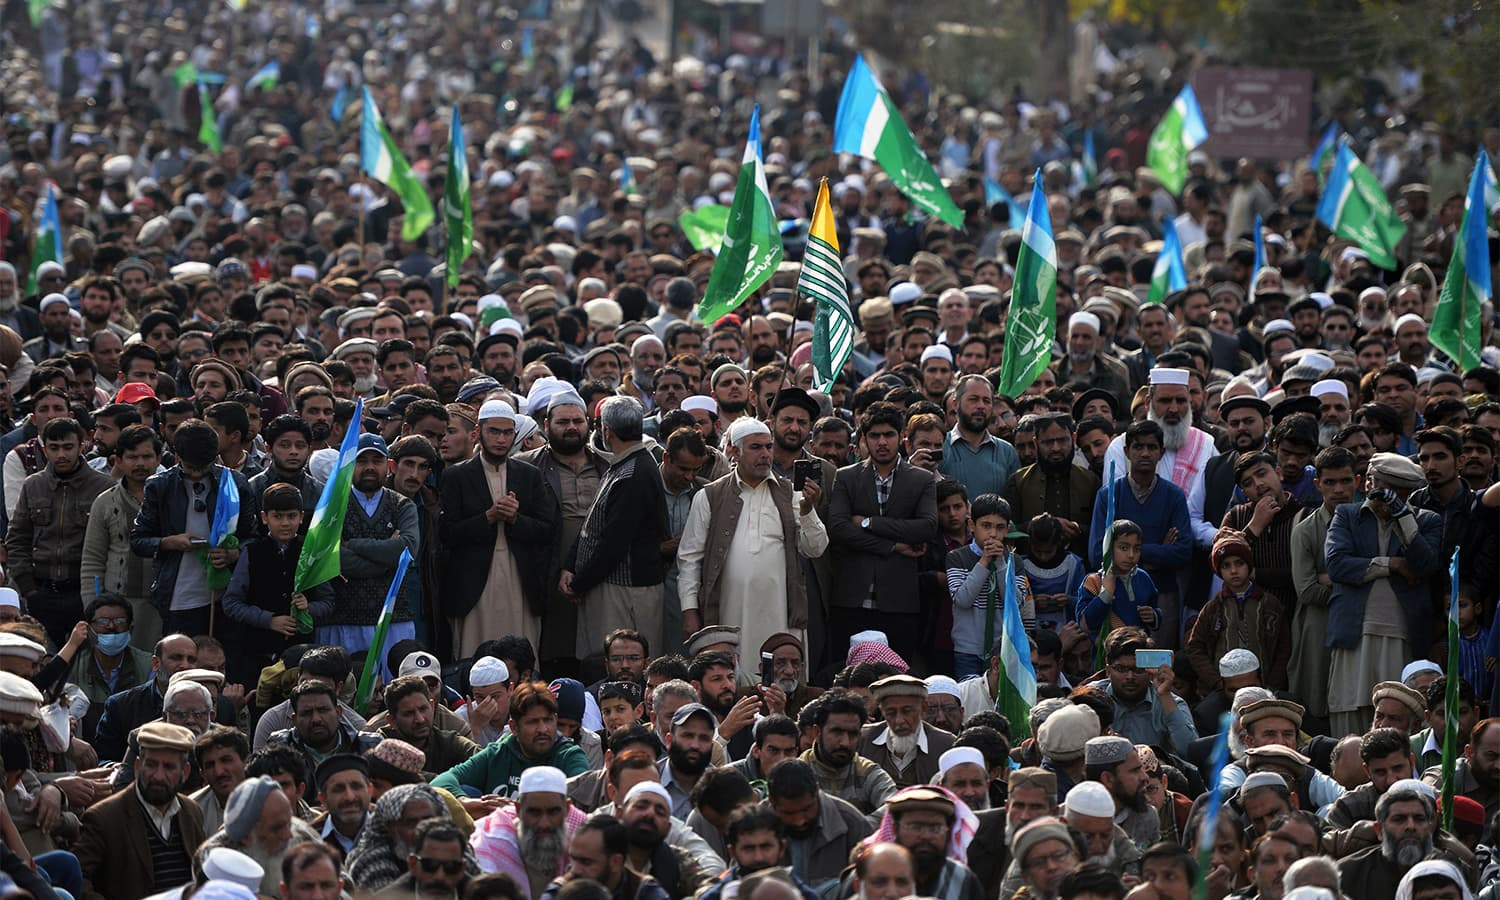 Activists of Jamaat-e-Islami gather to mark Kashmir Day in Islamabad. — AFP